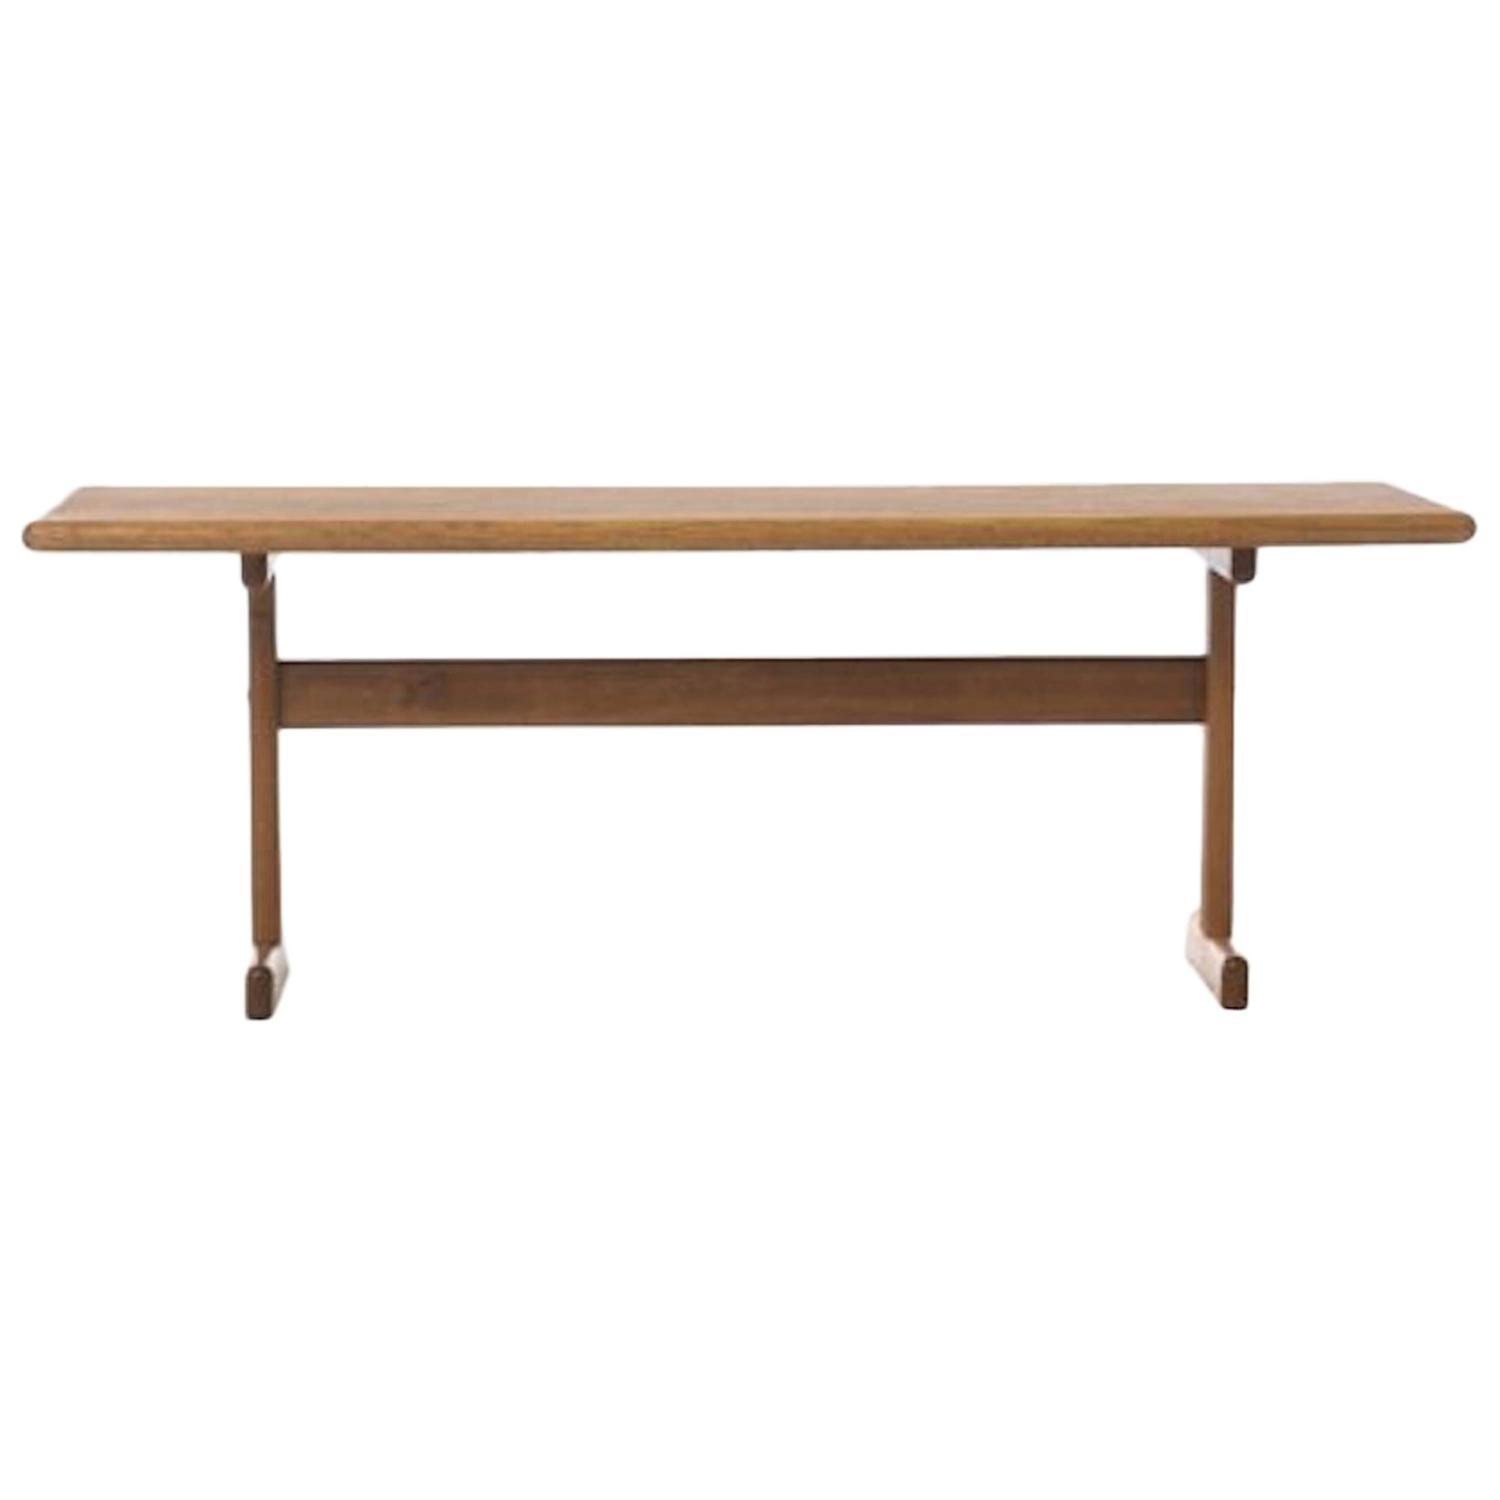 vintage danish modern coffee table in white oak for sale at 1stdibs. Black Bedroom Furniture Sets. Home Design Ideas